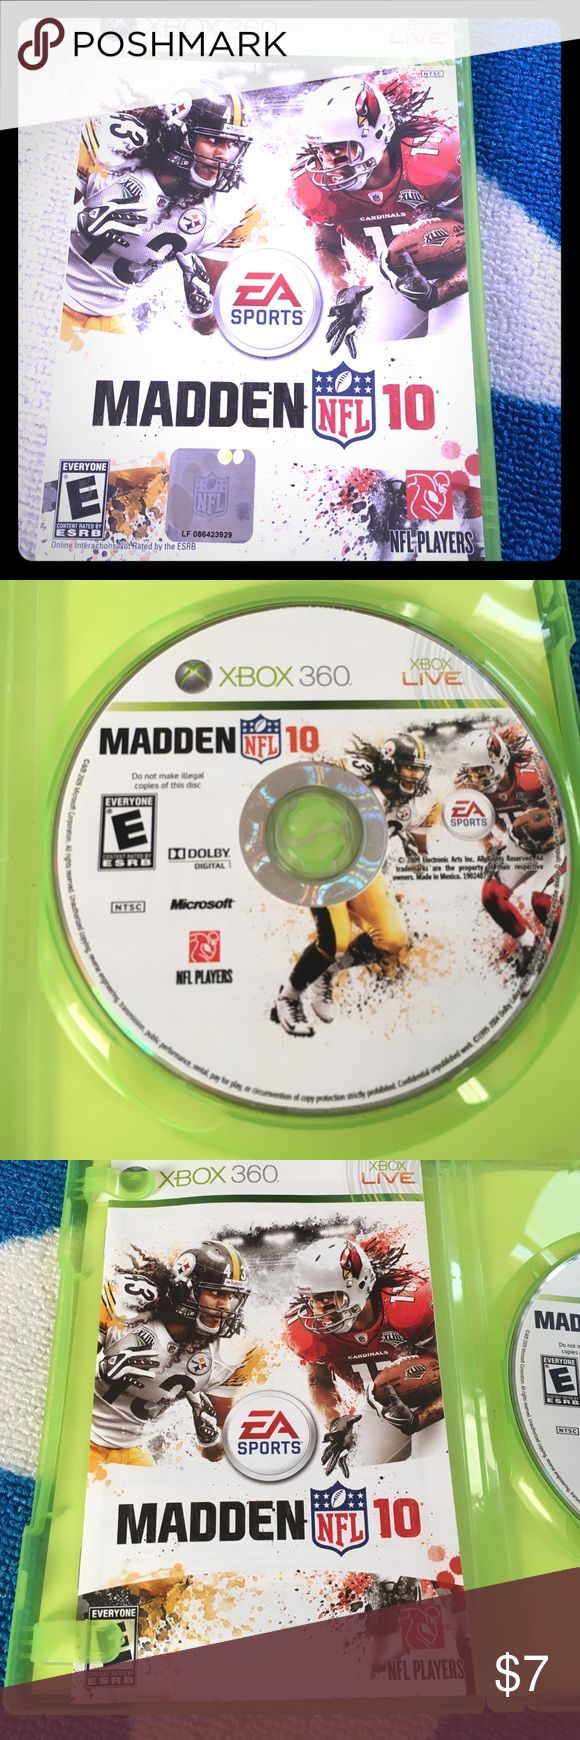 NFL Madden 10 Xbox 360 Can connect to Xbox live Xbox 360 Other